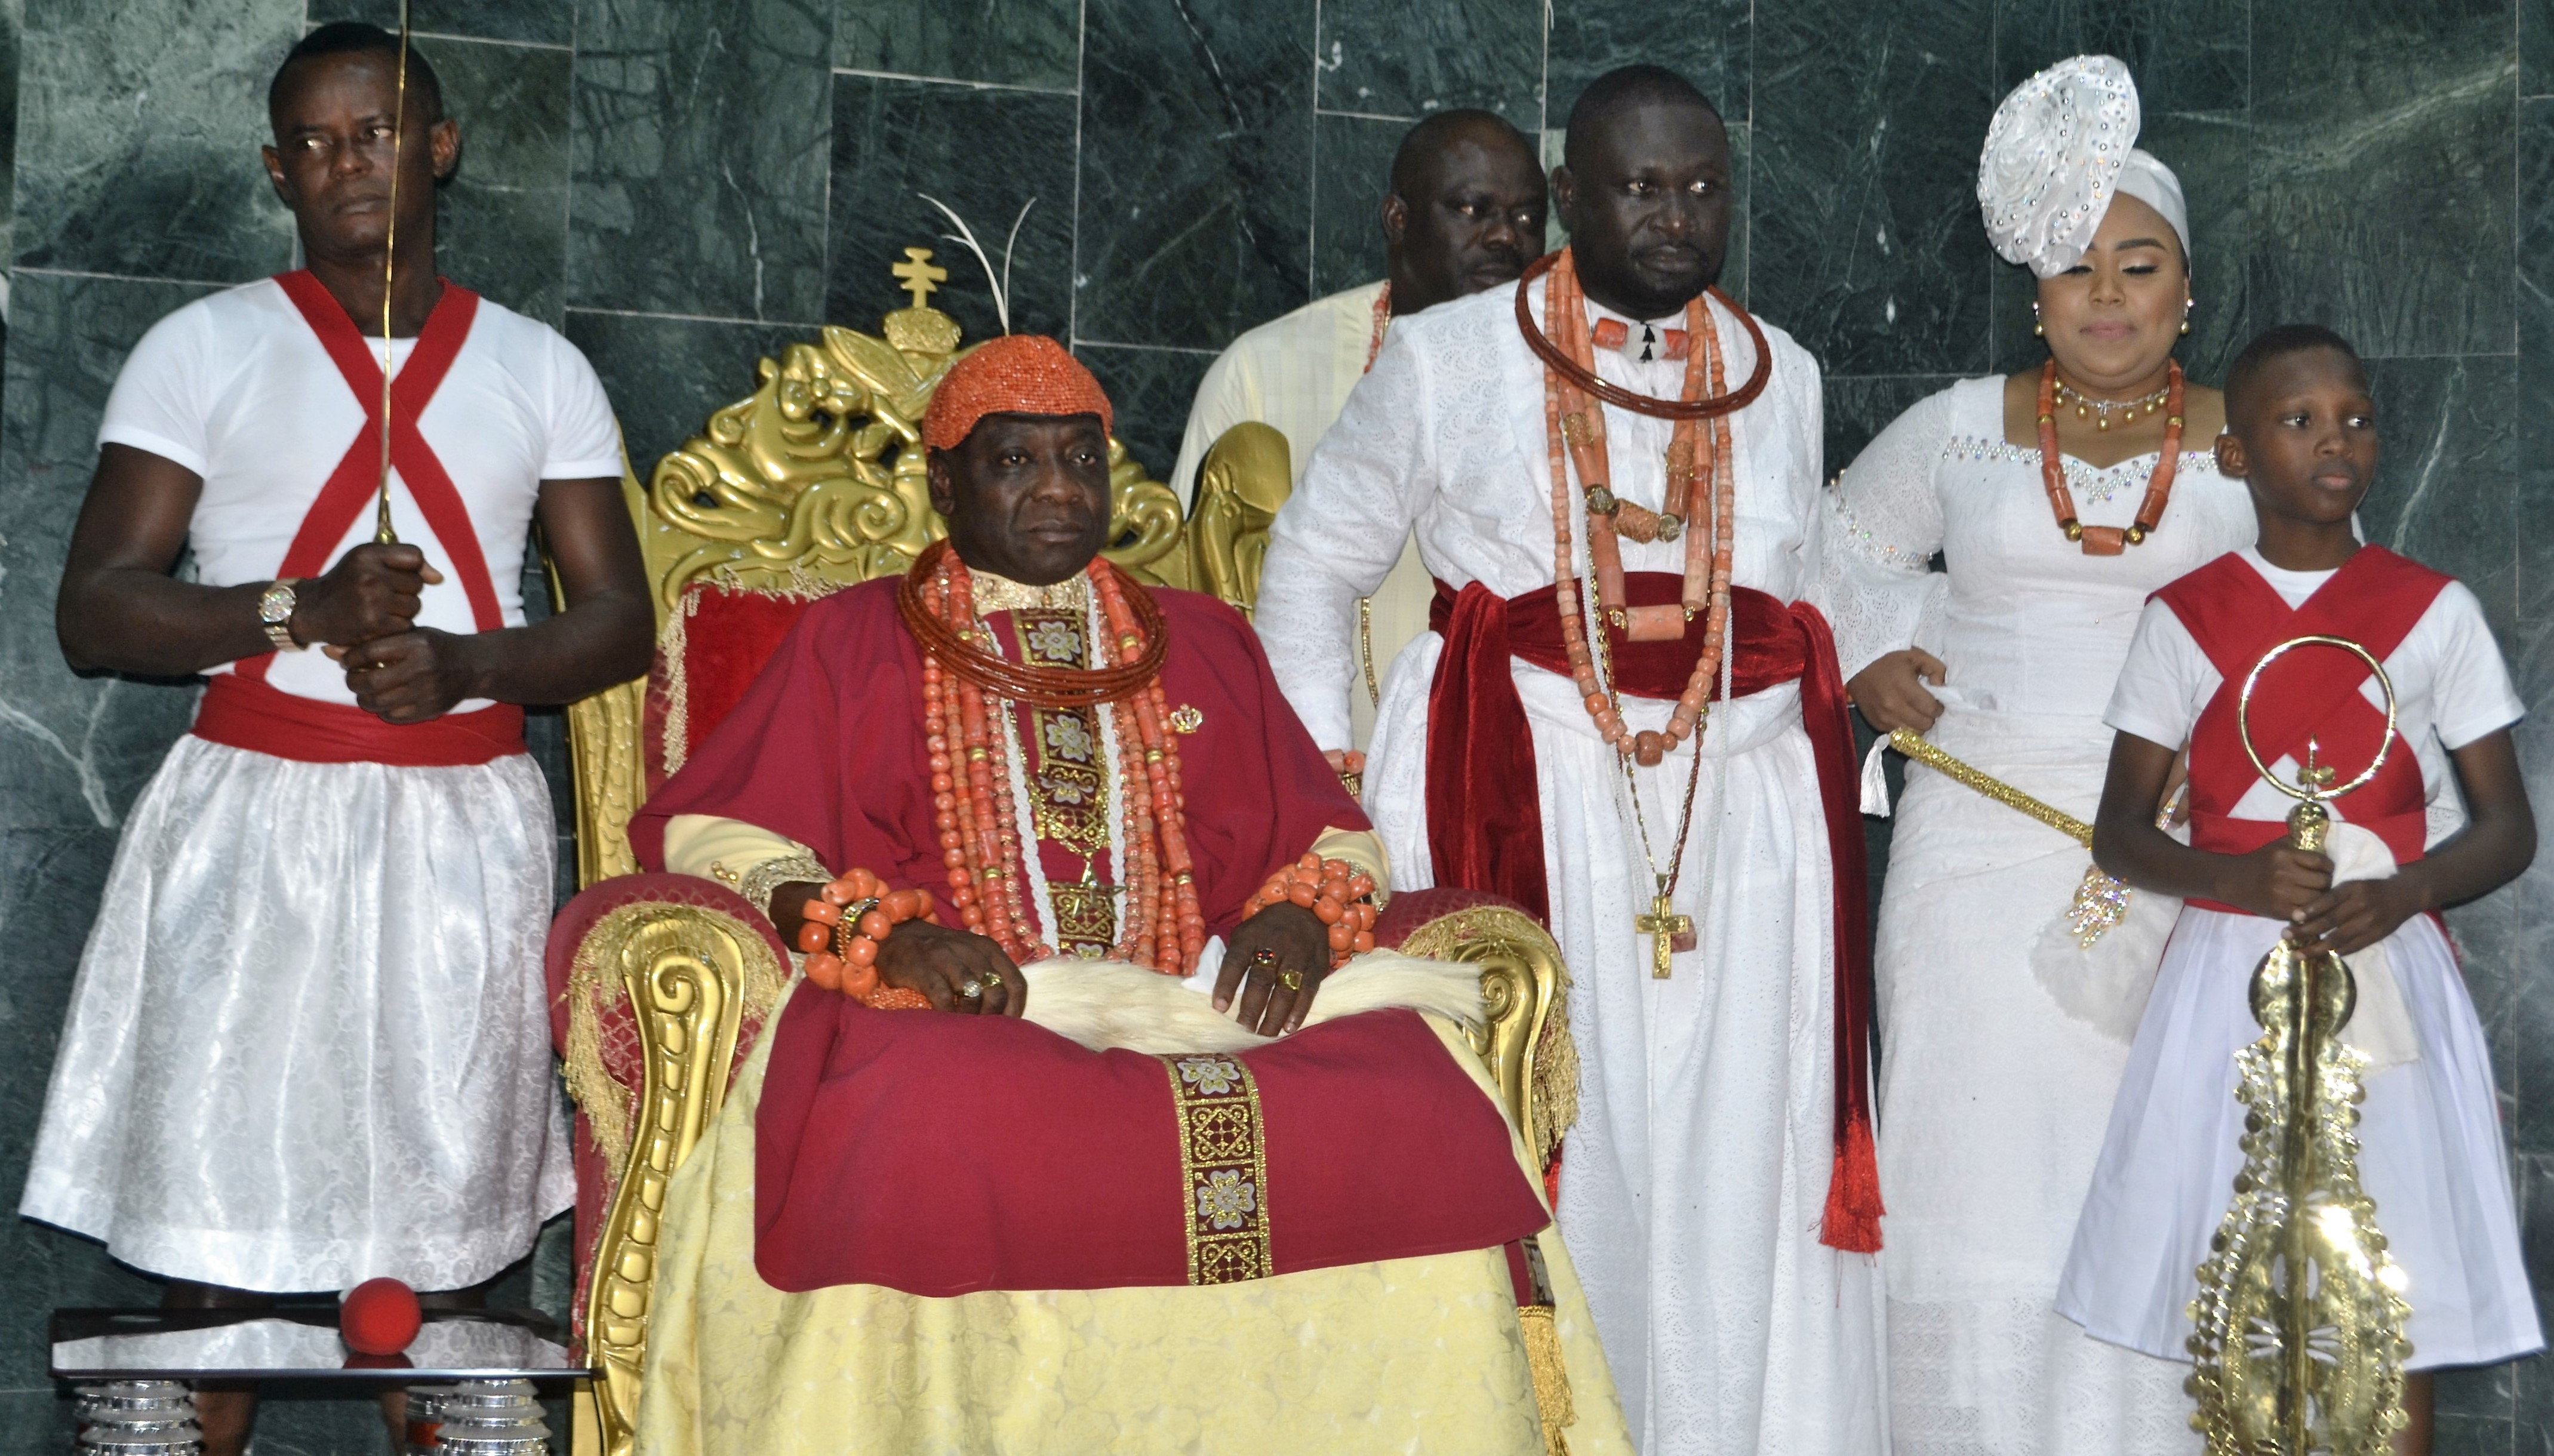 Ologbotsere: Nobody should be aggrieved, Olu of Warri advises